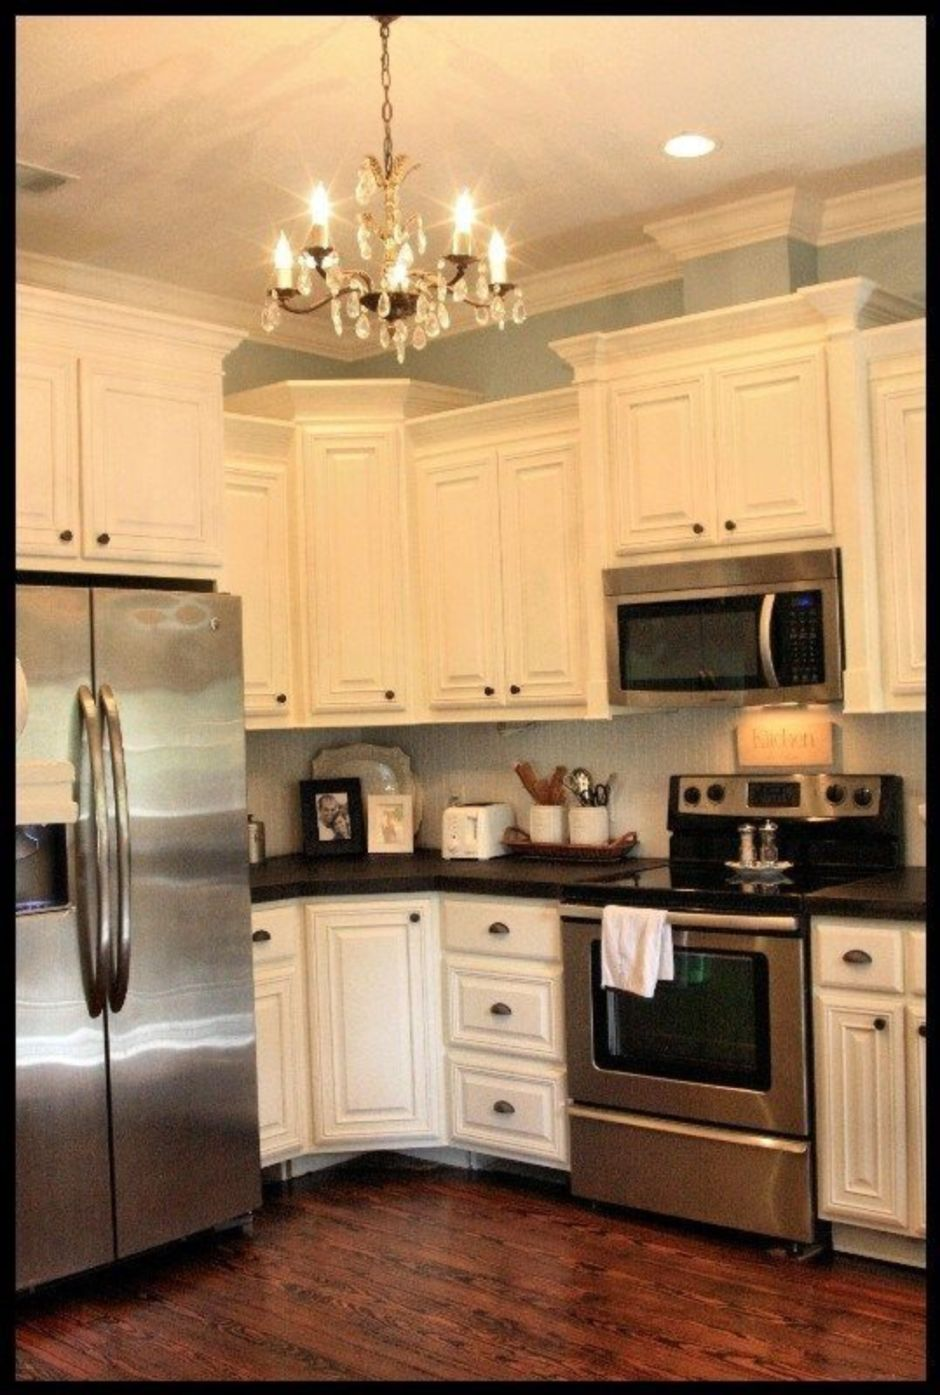 Elegant Kitchen Light Cabinets with Dark Countertops 48 ...